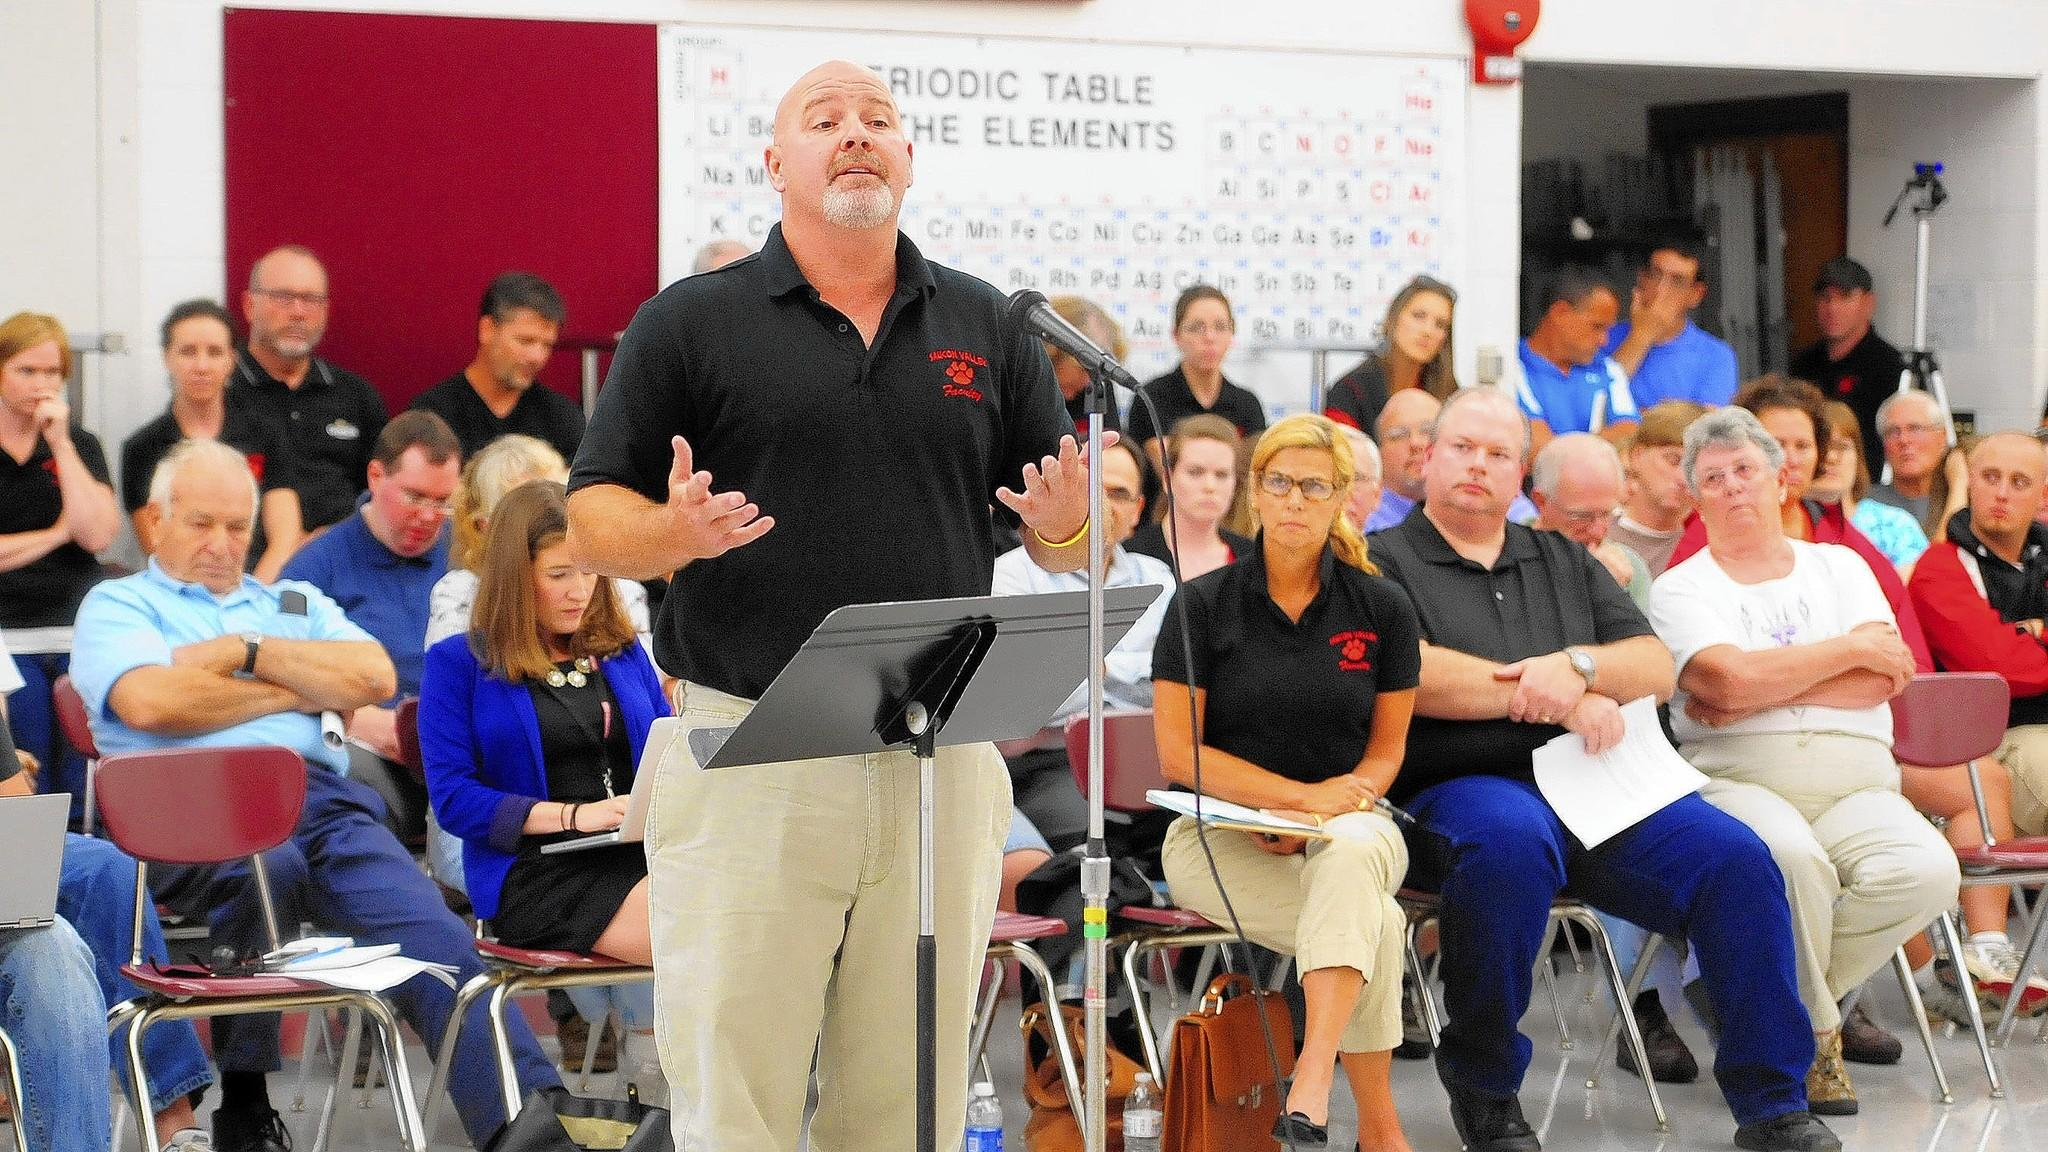 Saucon Valley teachers chief negotiator Rich Simononis addresses the school board Tuesday night. Teachers at the meeting asked one last time to have their contract proposal approved, and were turned down.